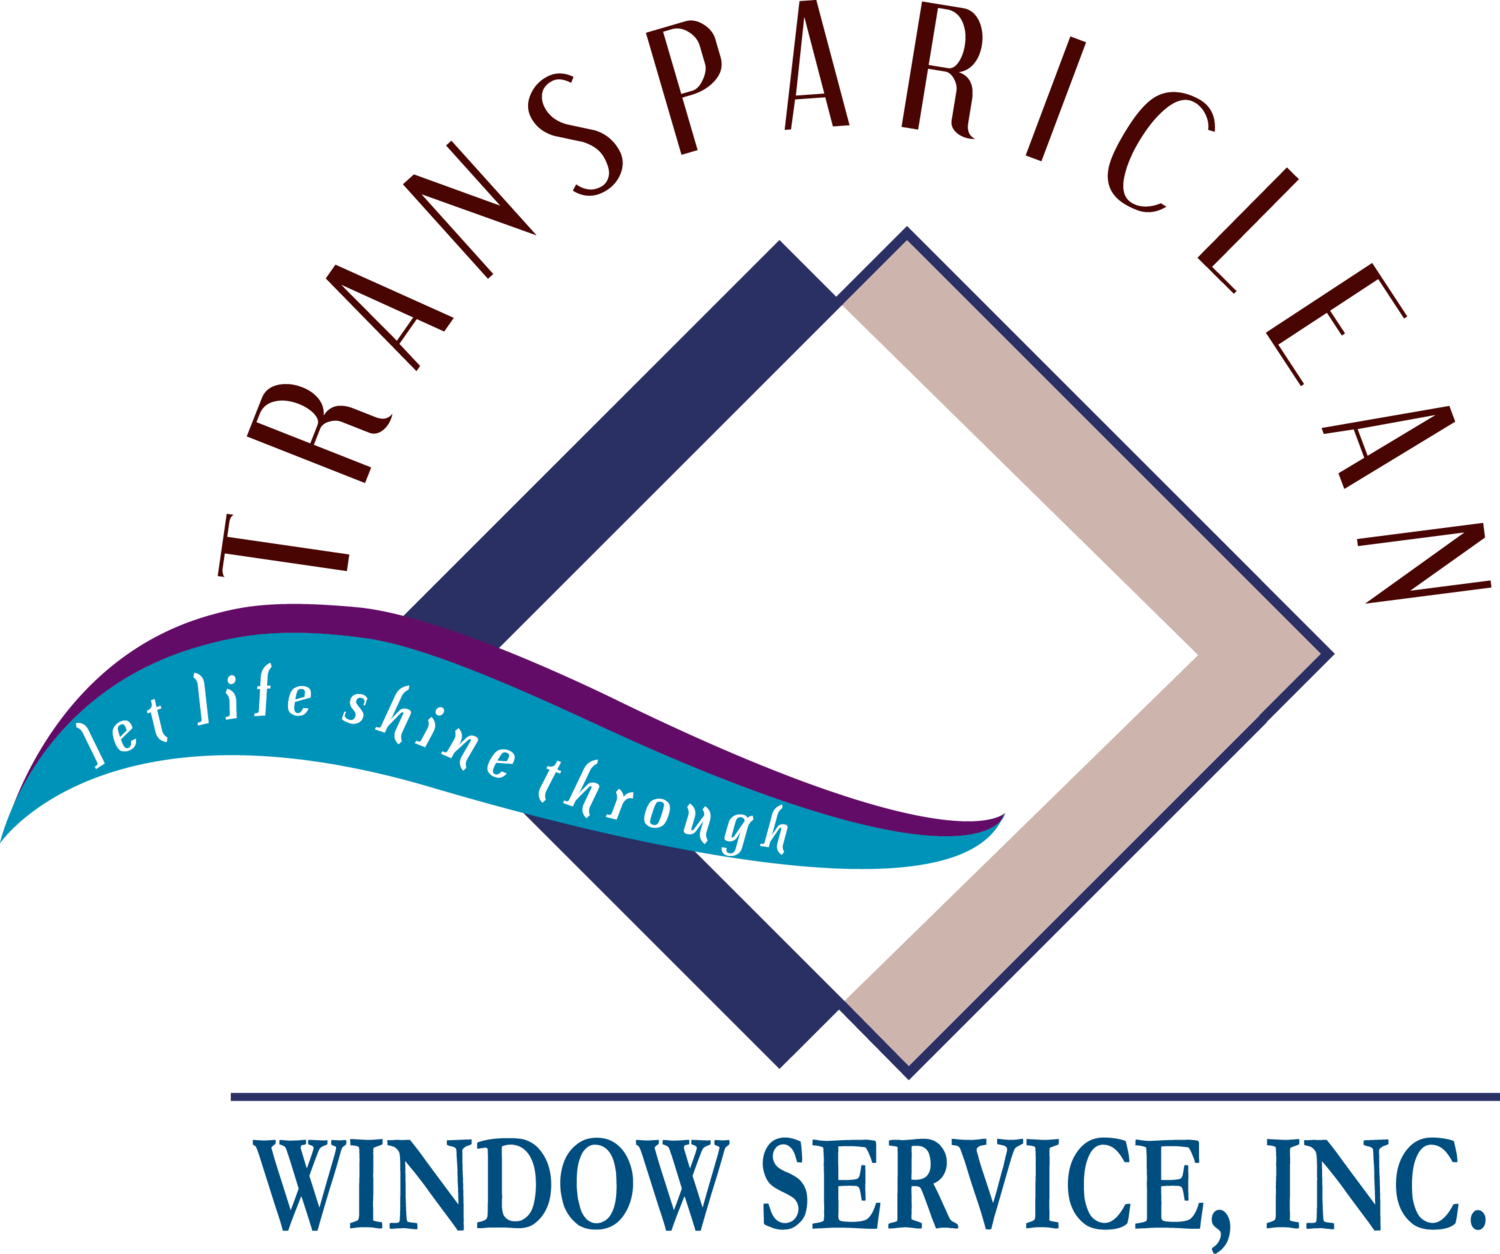 Transpariclean Window Service Inc.